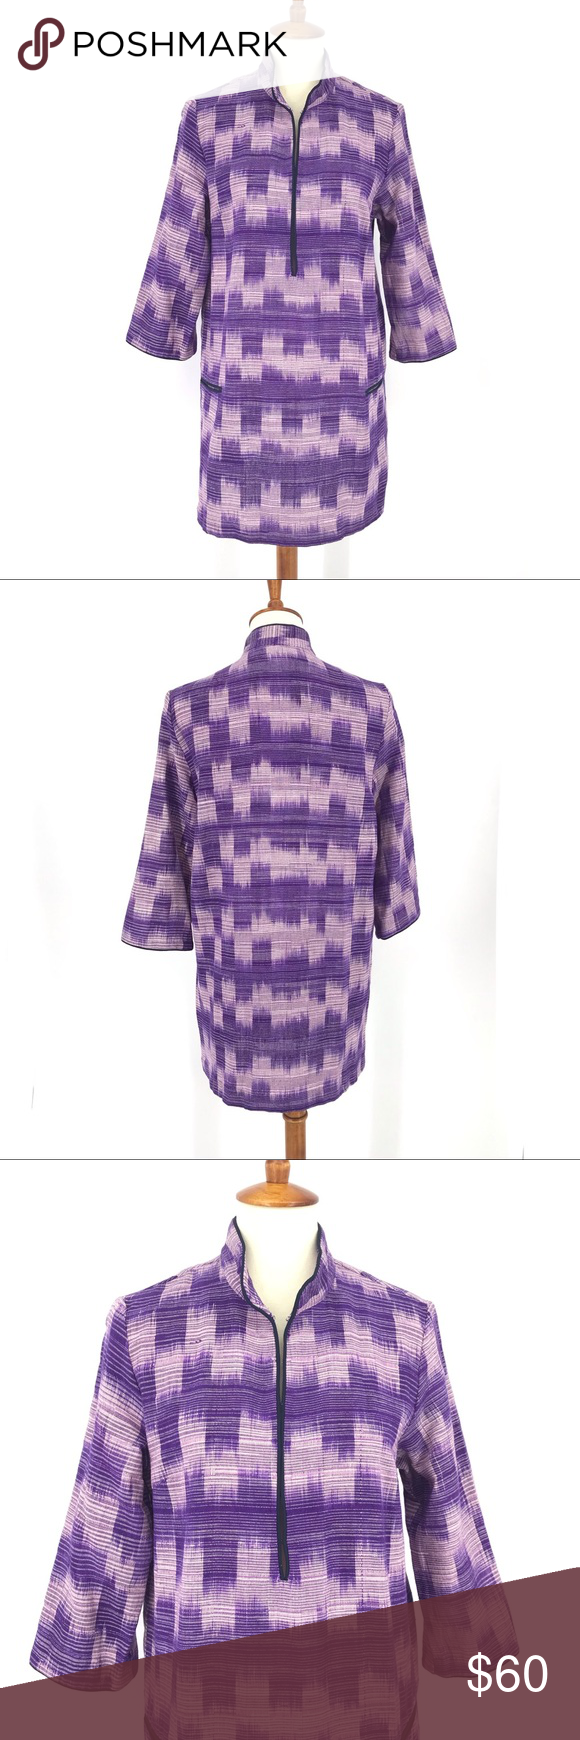 "Emerson Fry Ikat Tunic Emerson Fry purple weave tunic shirt kaftan. Features front pockets, silk piping, and hook eye front closure. Excellent preowned condition.   FLAT LAY MEASUREMENTS: Bust is 19"" Sleeve is 18"" Length is 32"" Emerson Fry Tops Tunics #emersonfry Emerson Fry Ikat Tunic Emerson Fry purple weave tunic shirt kaftan. Features front pockets, silk piping, and hook eye front closure. Excellent preowned condition.   FLAT LAY MEASUREMENTS: Bust is 19"" Sleeve is 18"" Length is 32 #emersonfry"